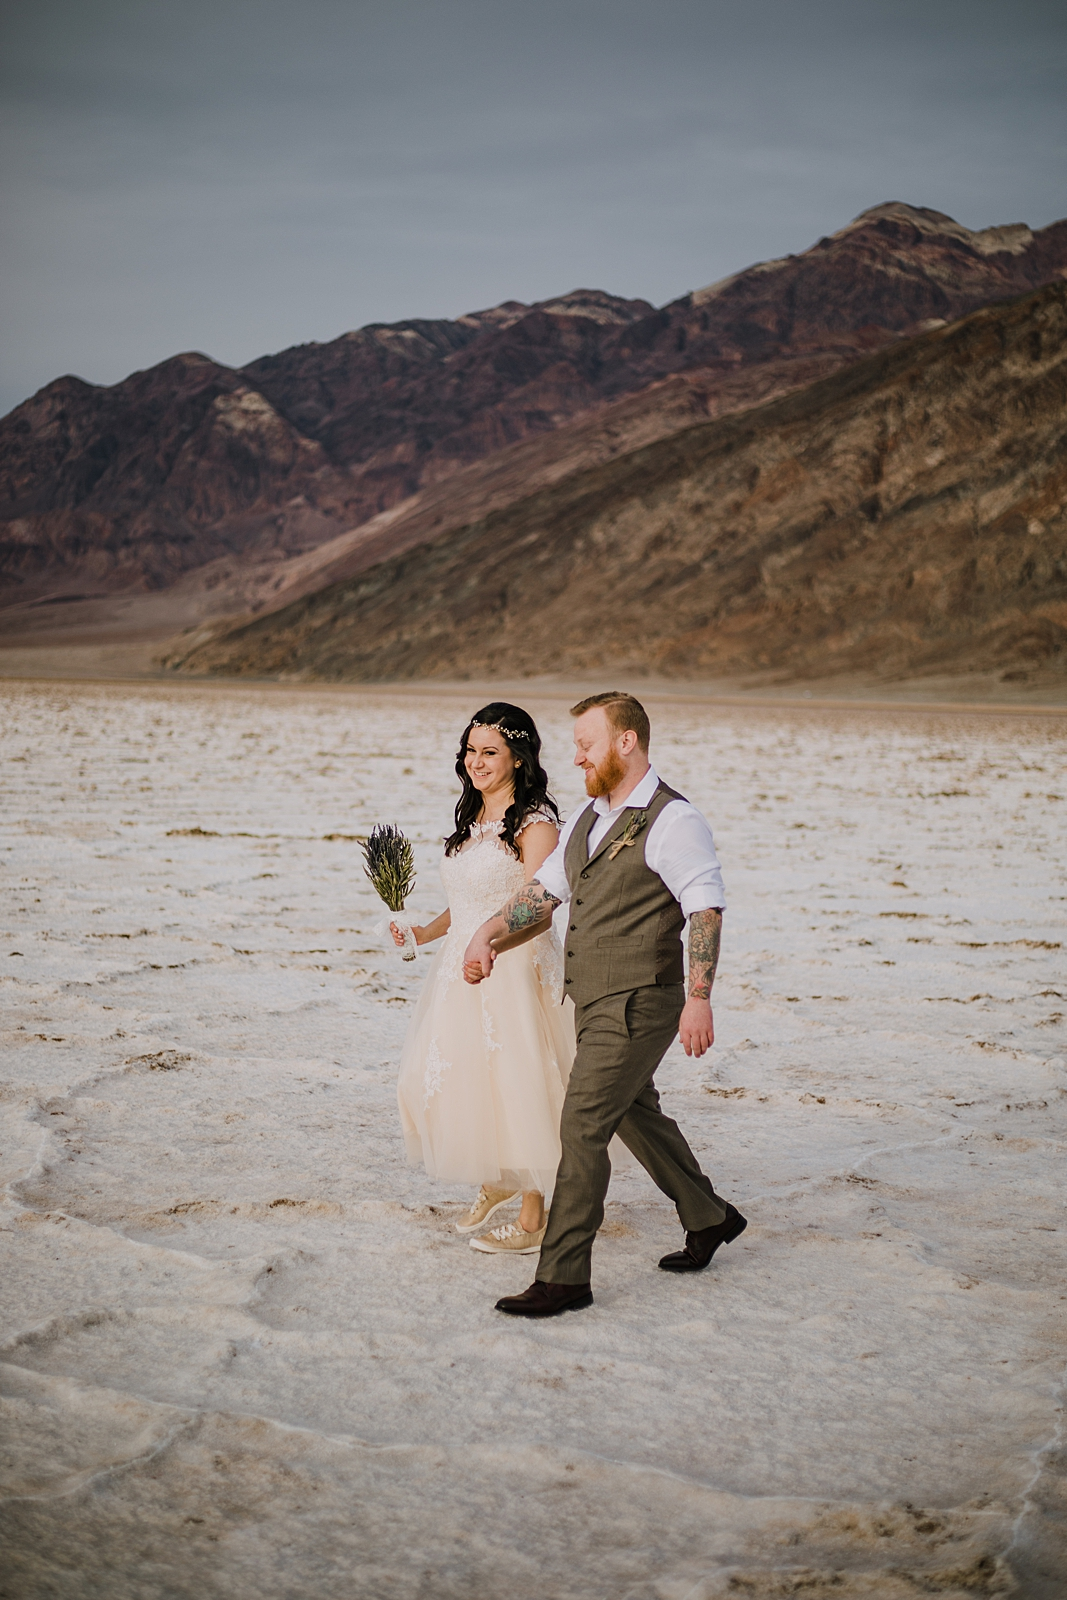 walking on the salt flats, death valley national park elopement, elope in death valley, badwater basin elopement, hiking in death valley national park, sunset at badwater basin